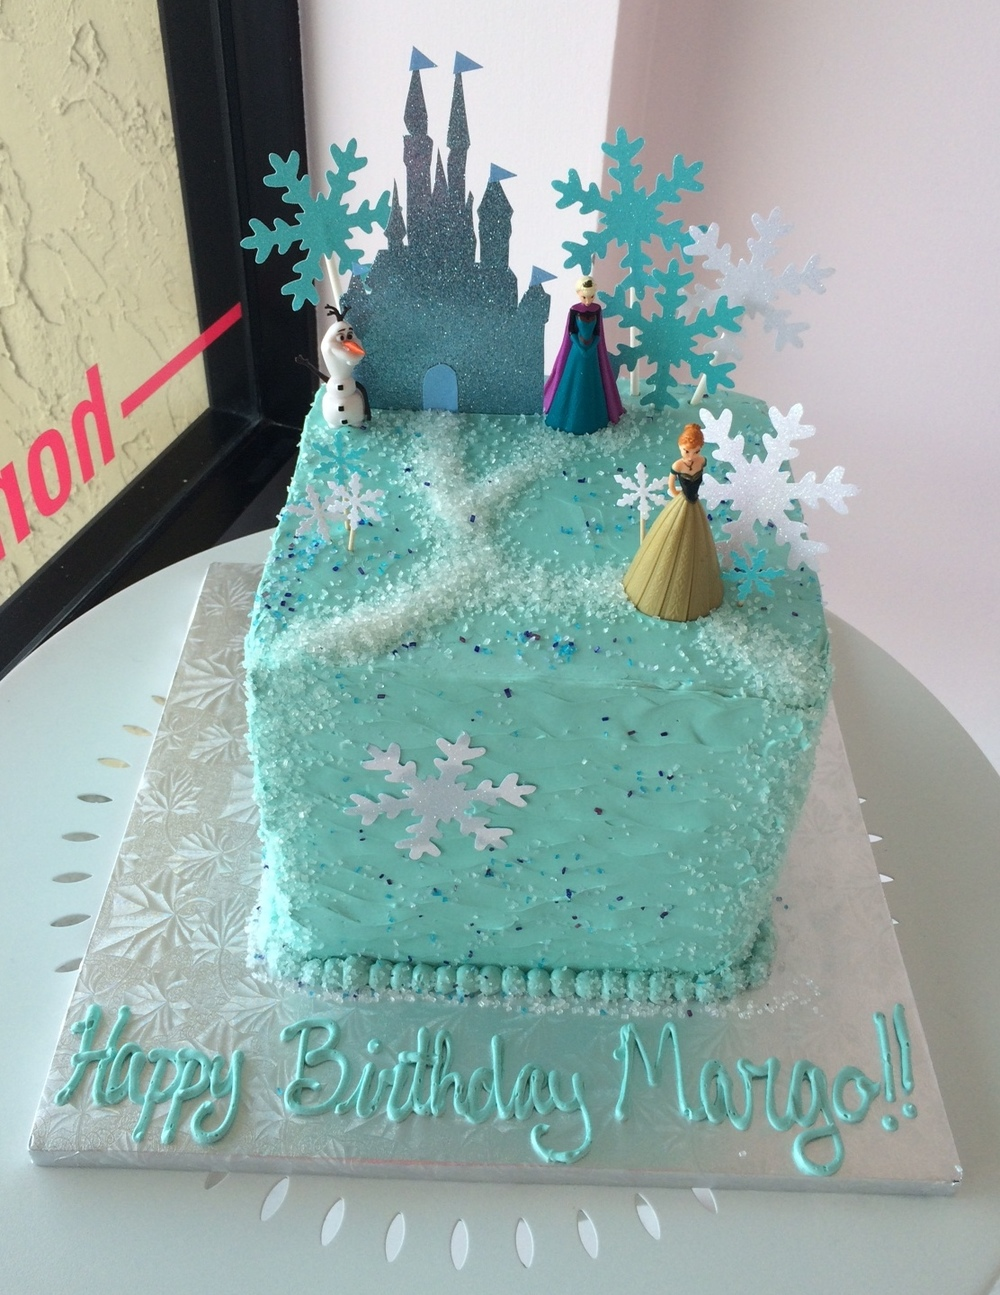 Frozen Birthday Cake with Castle.JPG